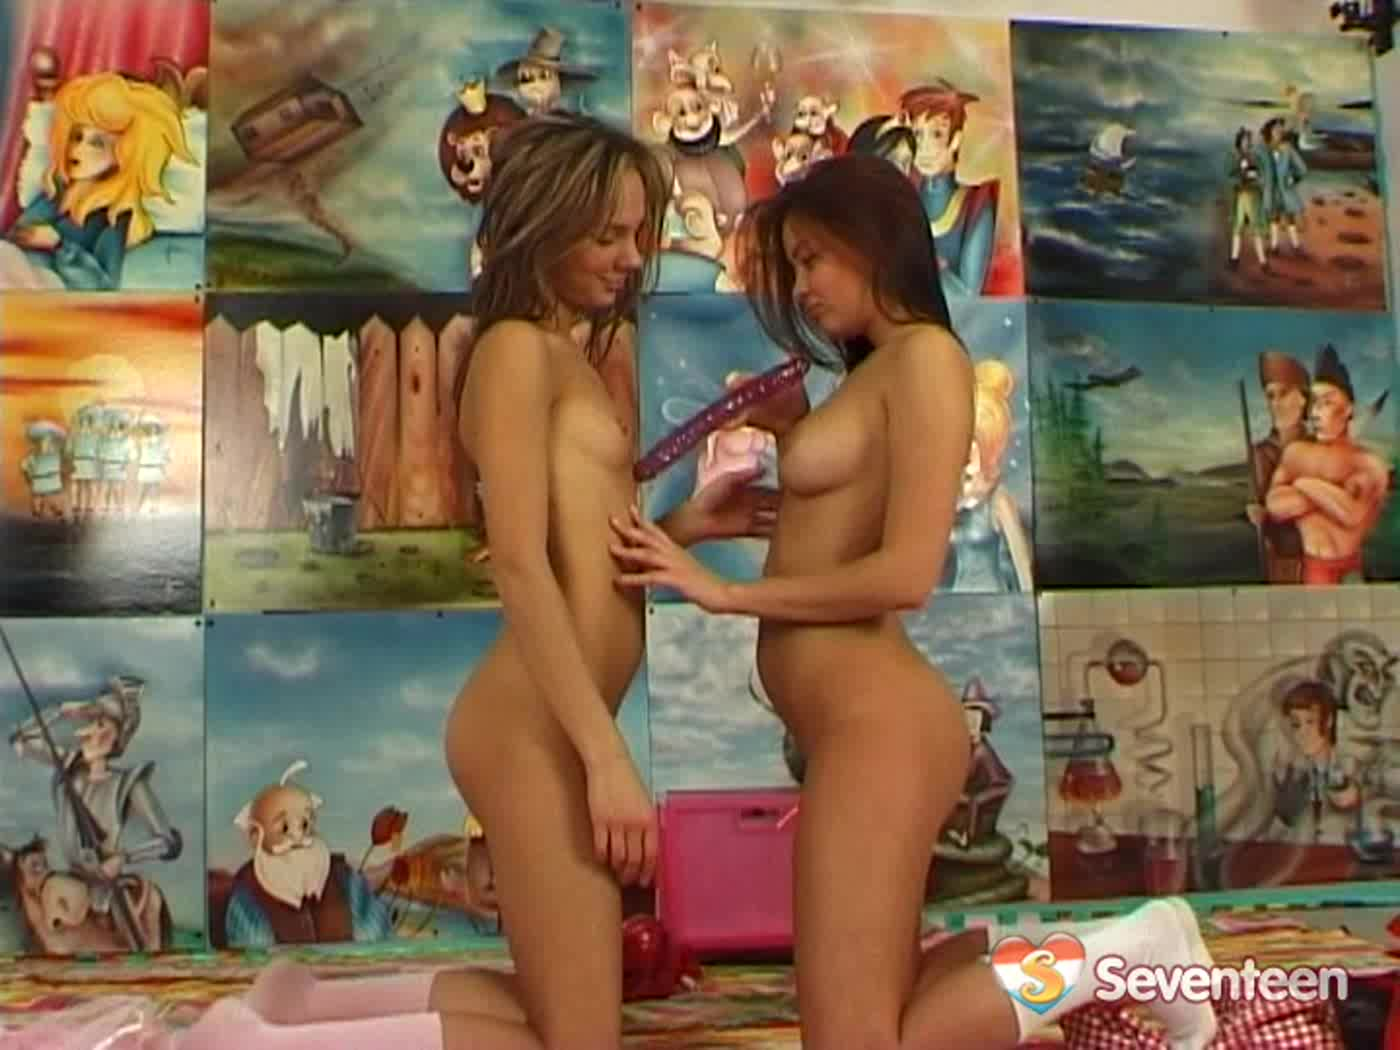 Two beautiful naughty teenage girls having fun